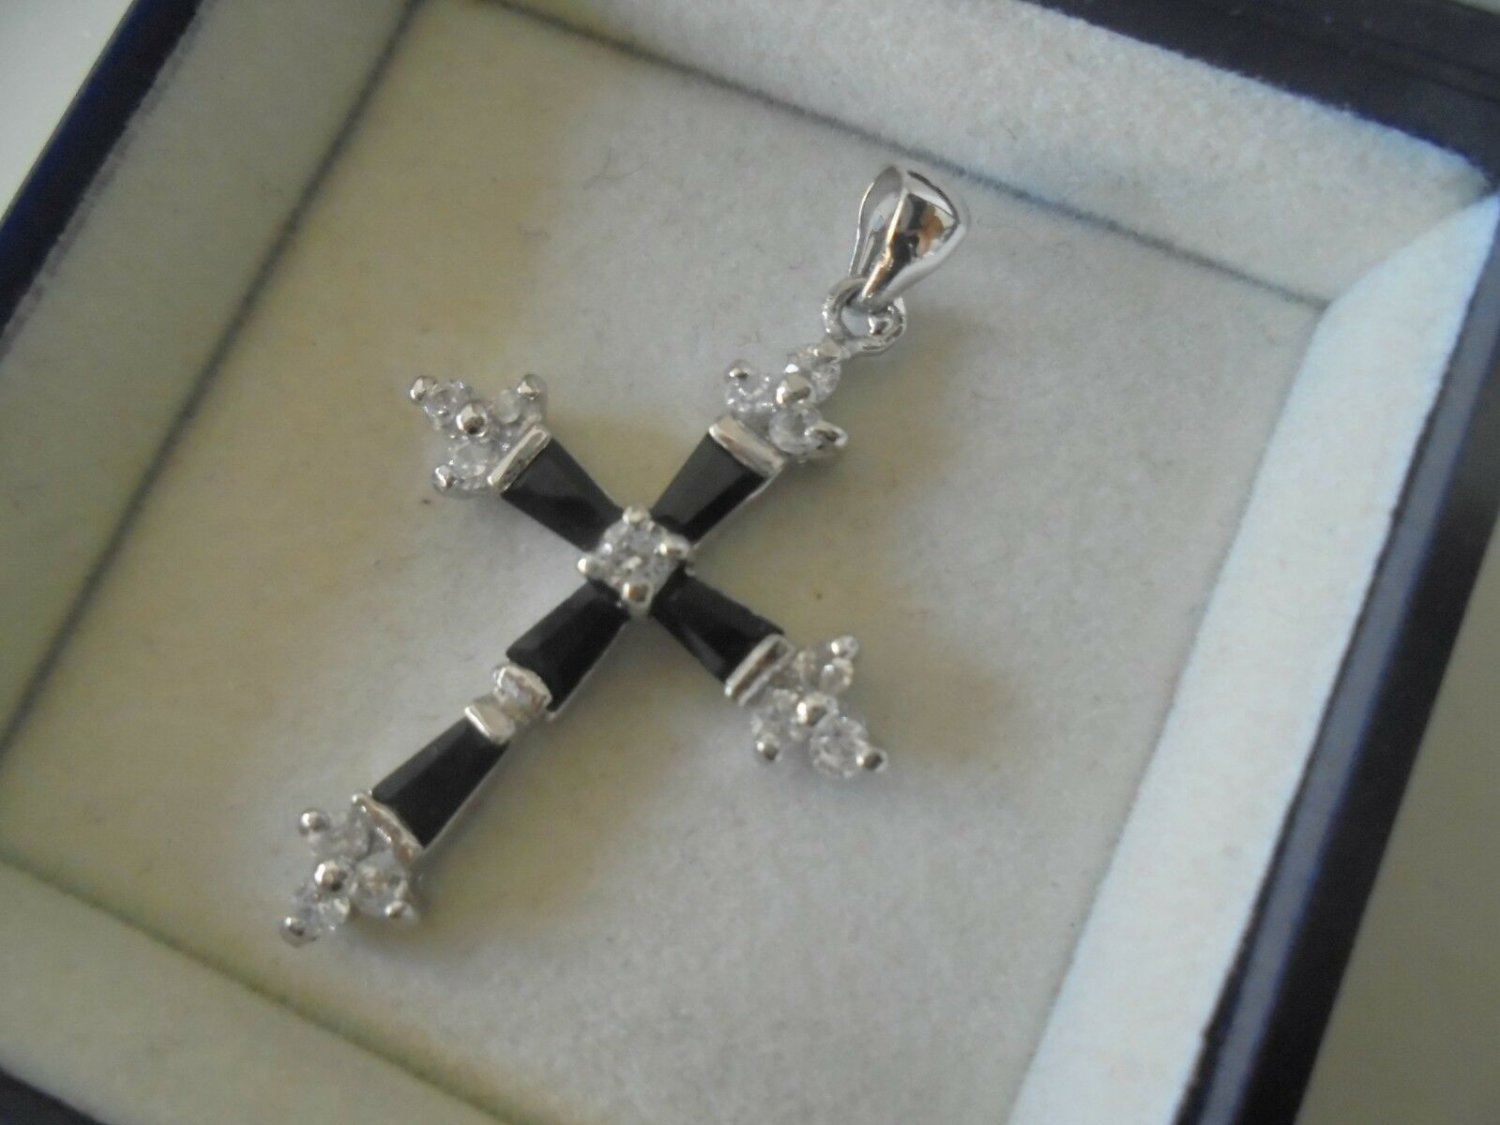 CROSS PENDENT CHARM plated in white gold and with white crystals Original in gift box